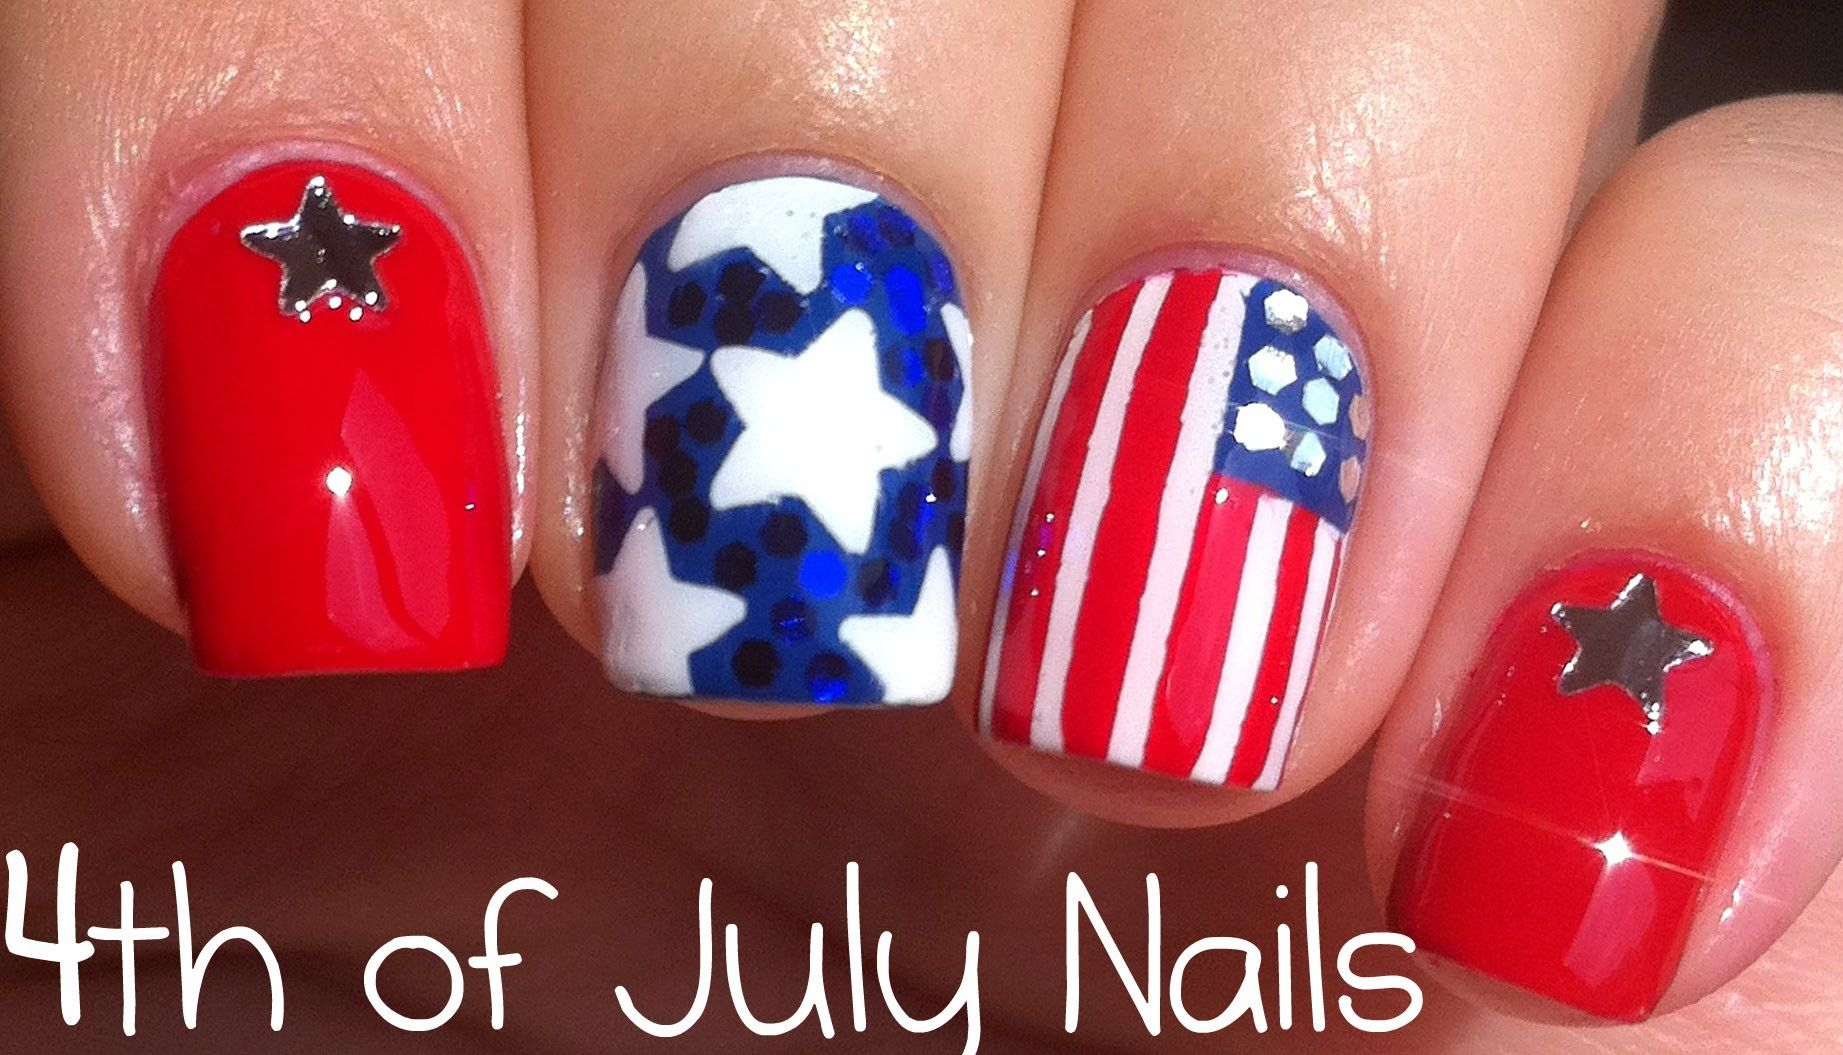 Th of july nail art tutorial red white u blue pinterest art